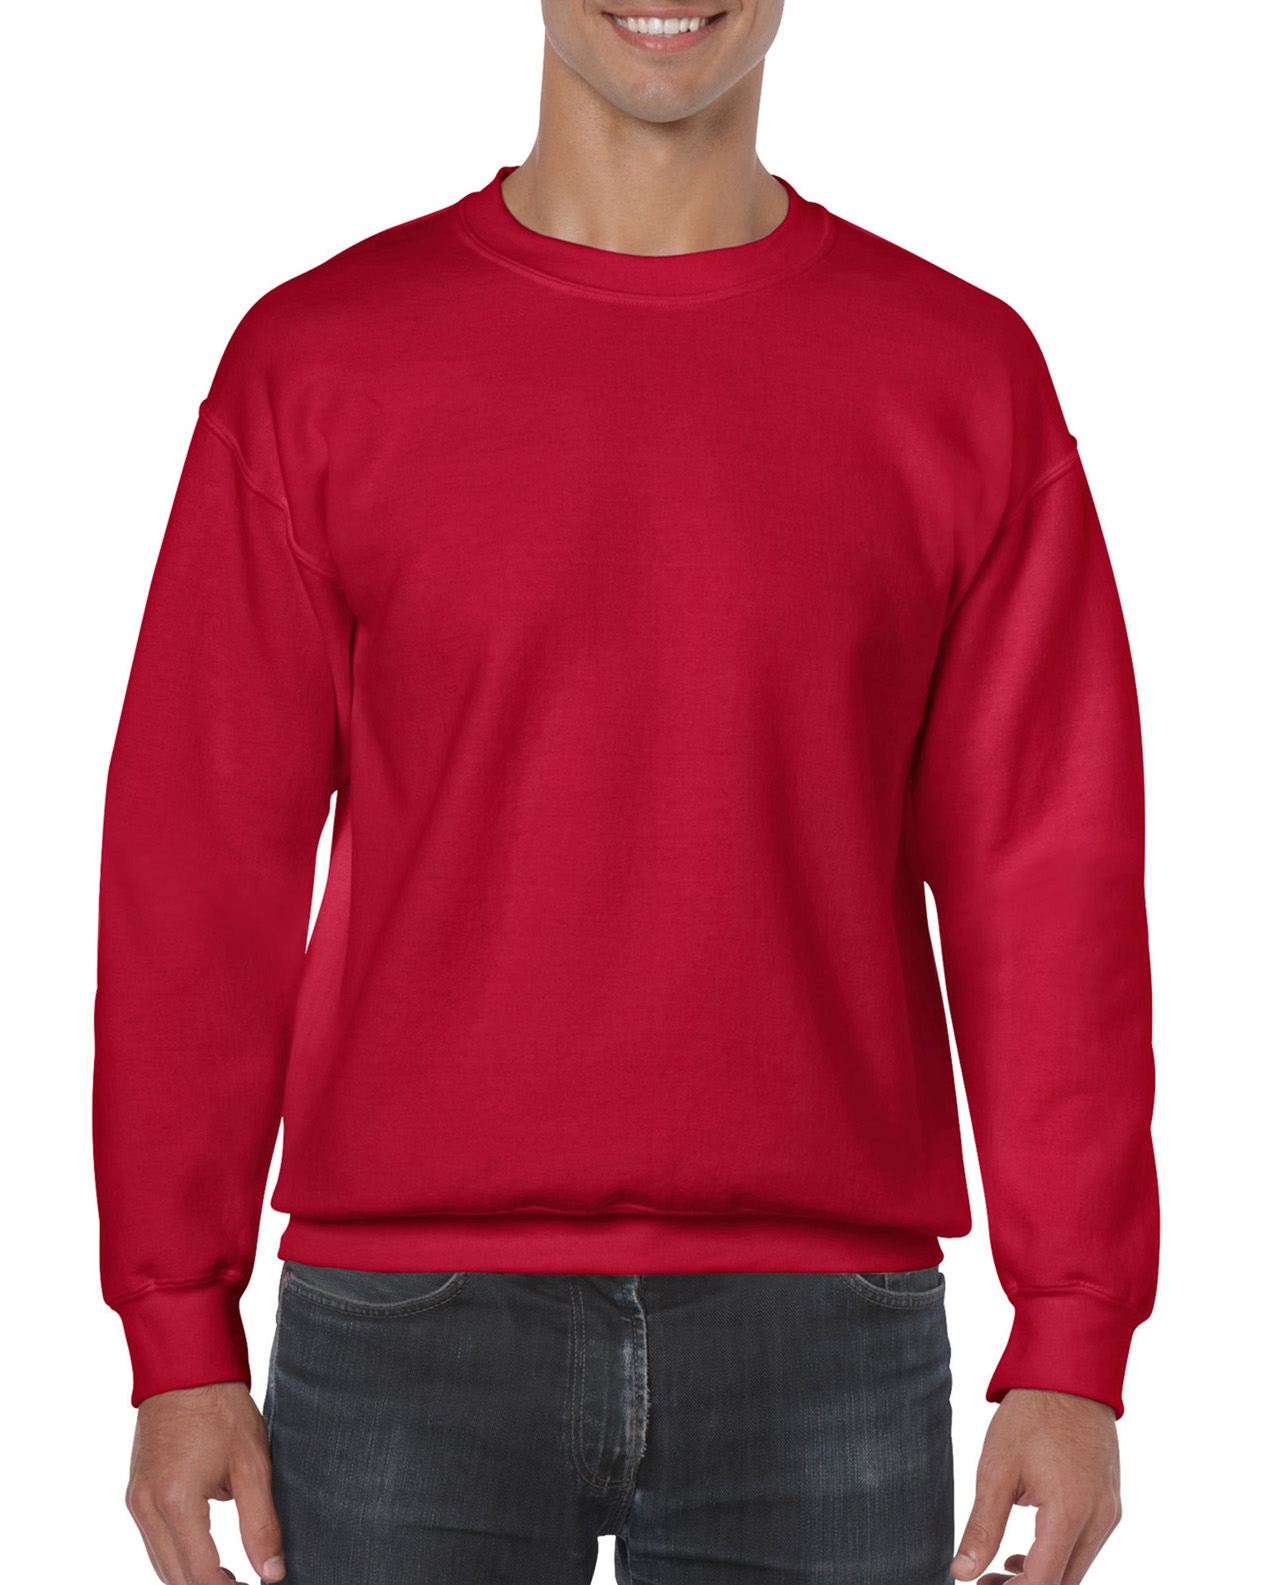 209fae8056486 18000 | Gildan® Heavy Blend™ | 8.0 oz/yd² | Adult Crewneck ...